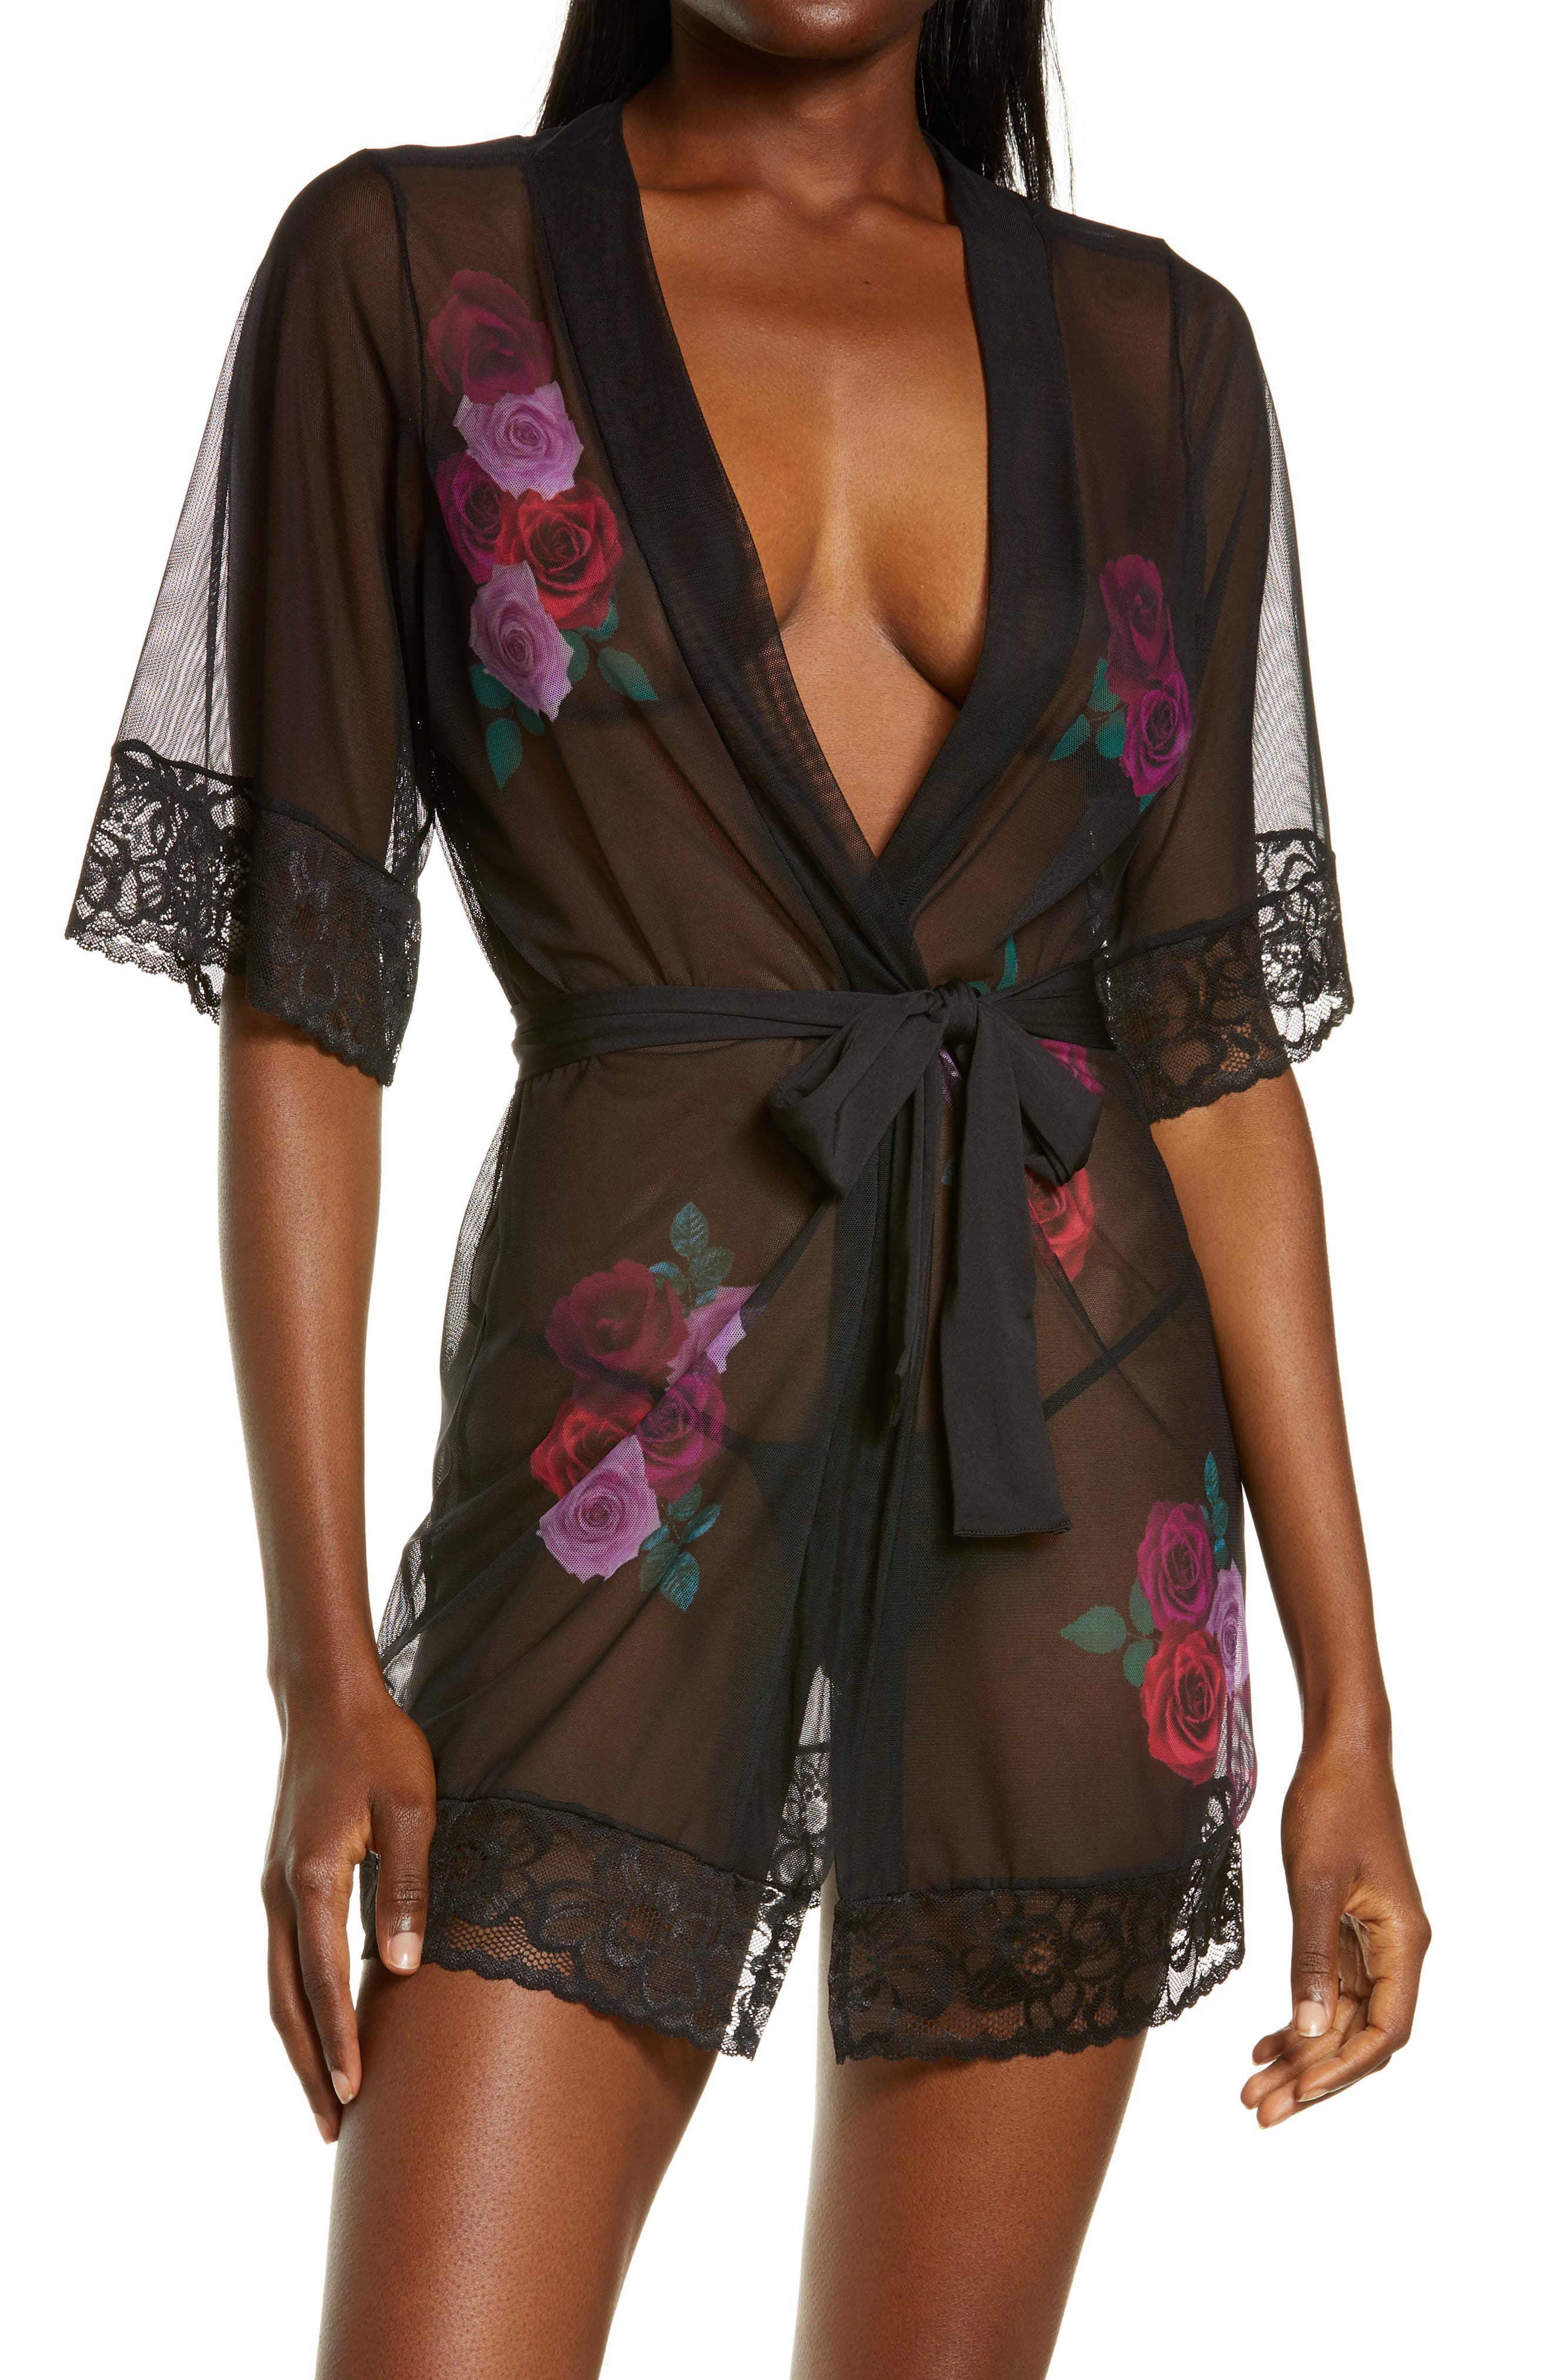 Floral Print Mesh Robe With Thong